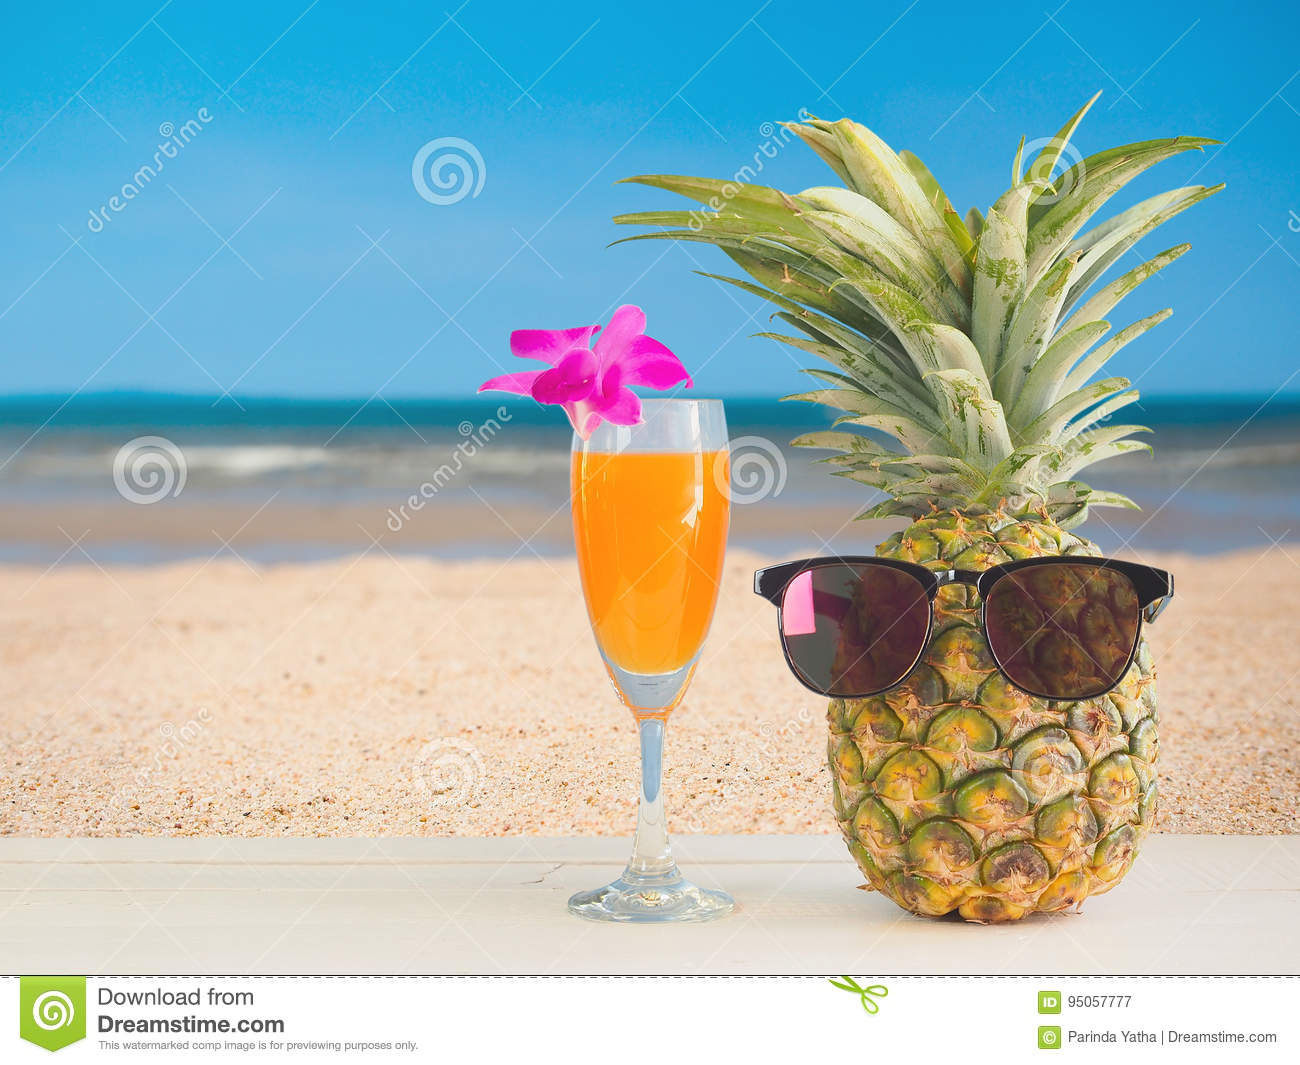 Pineapple At The Beach: Pineapple Juice With Sea Beach Background. Stock Image